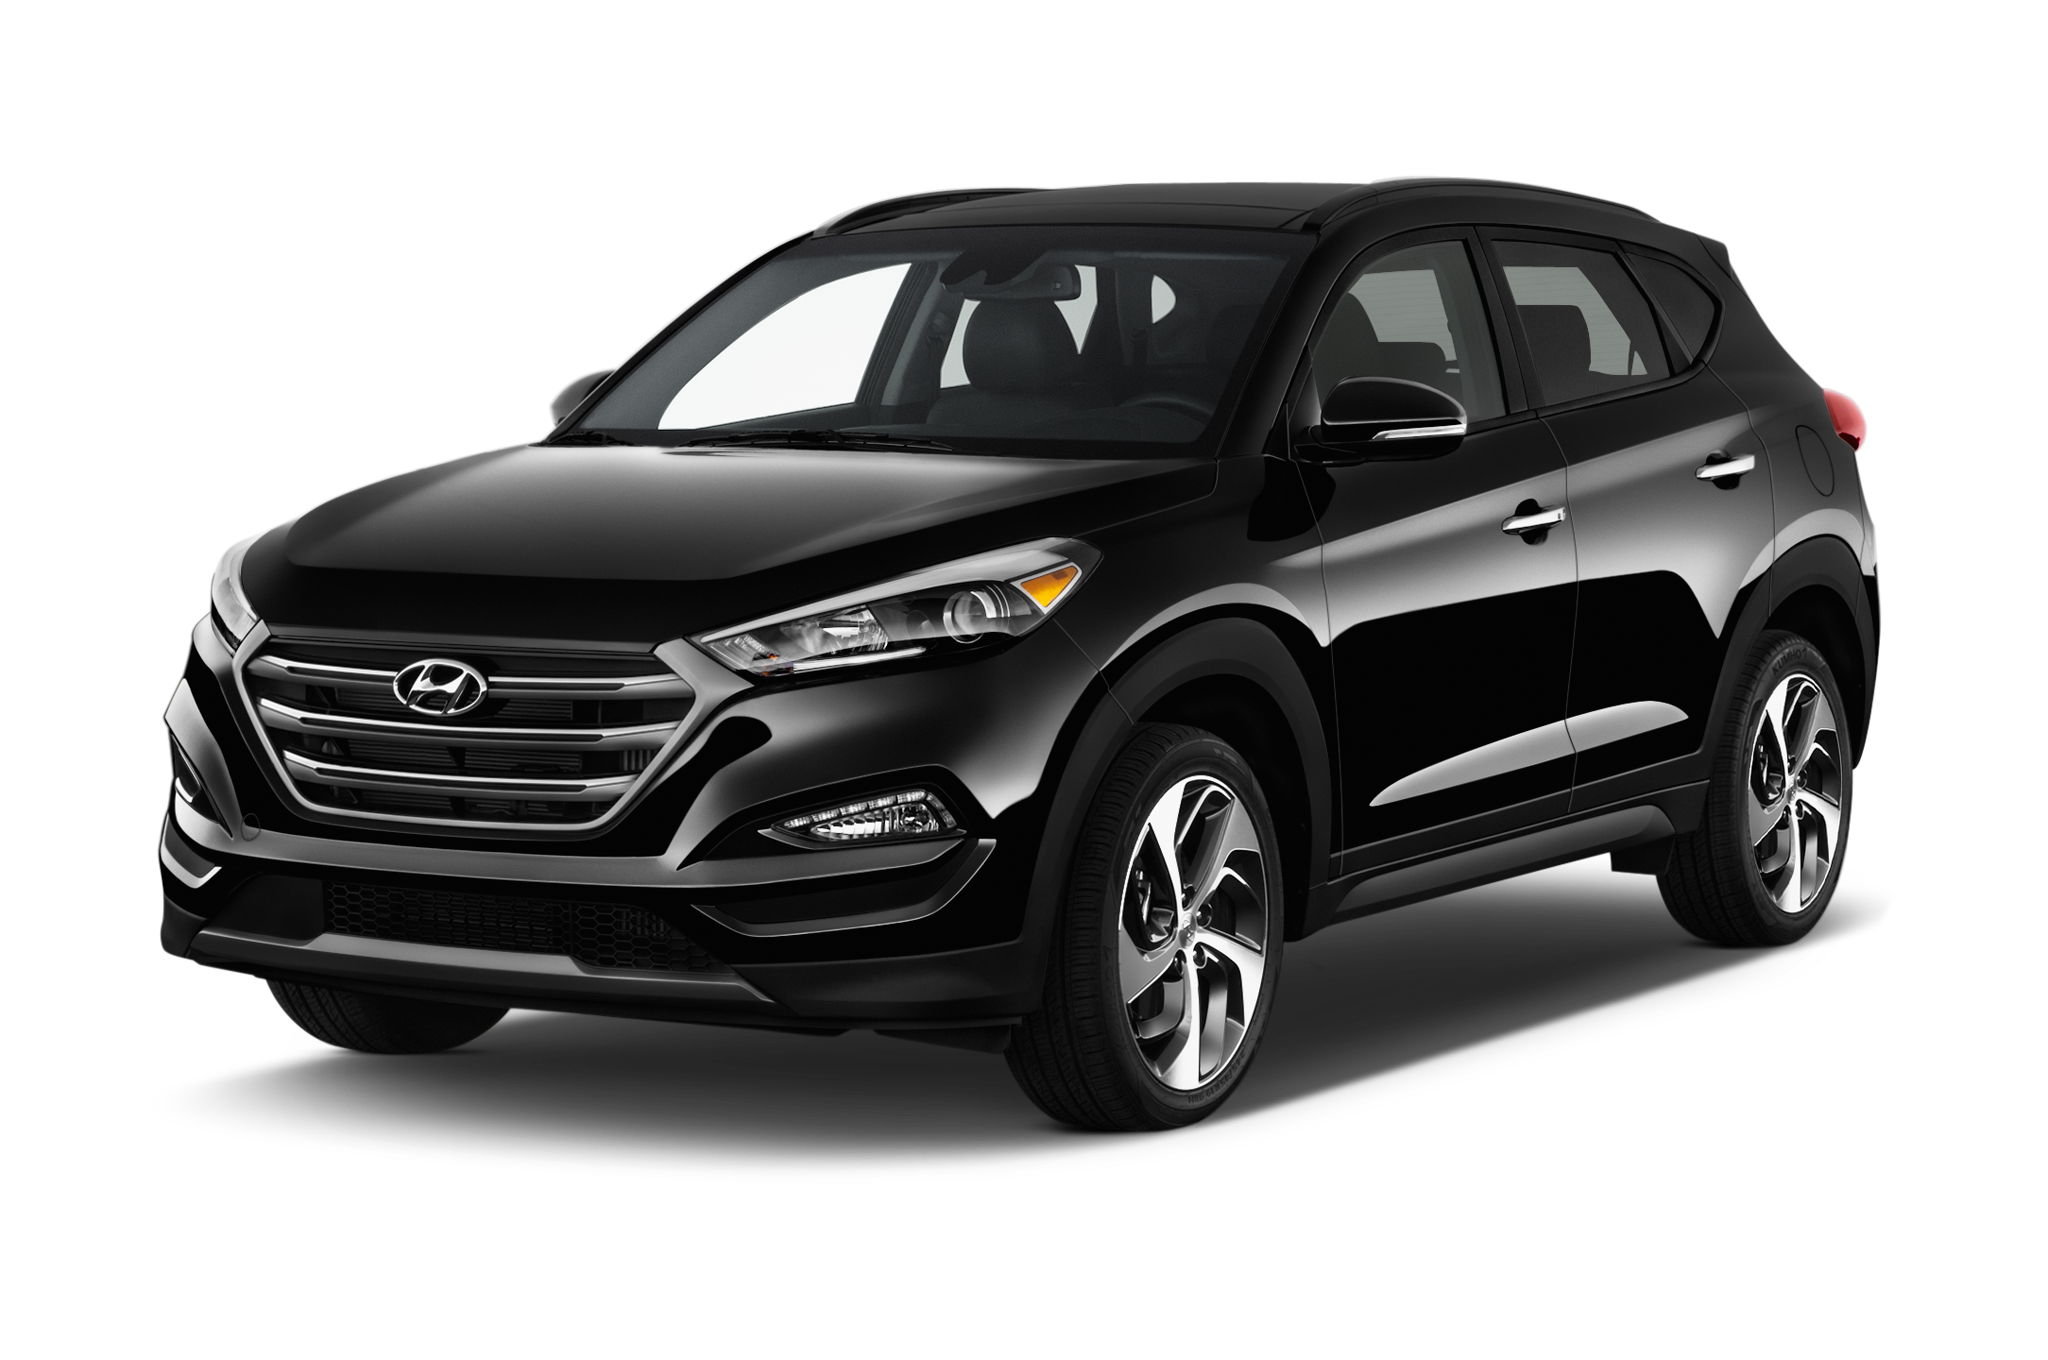 2016 hyundai tucson overview msn autos. Black Bedroom Furniture Sets. Home Design Ideas